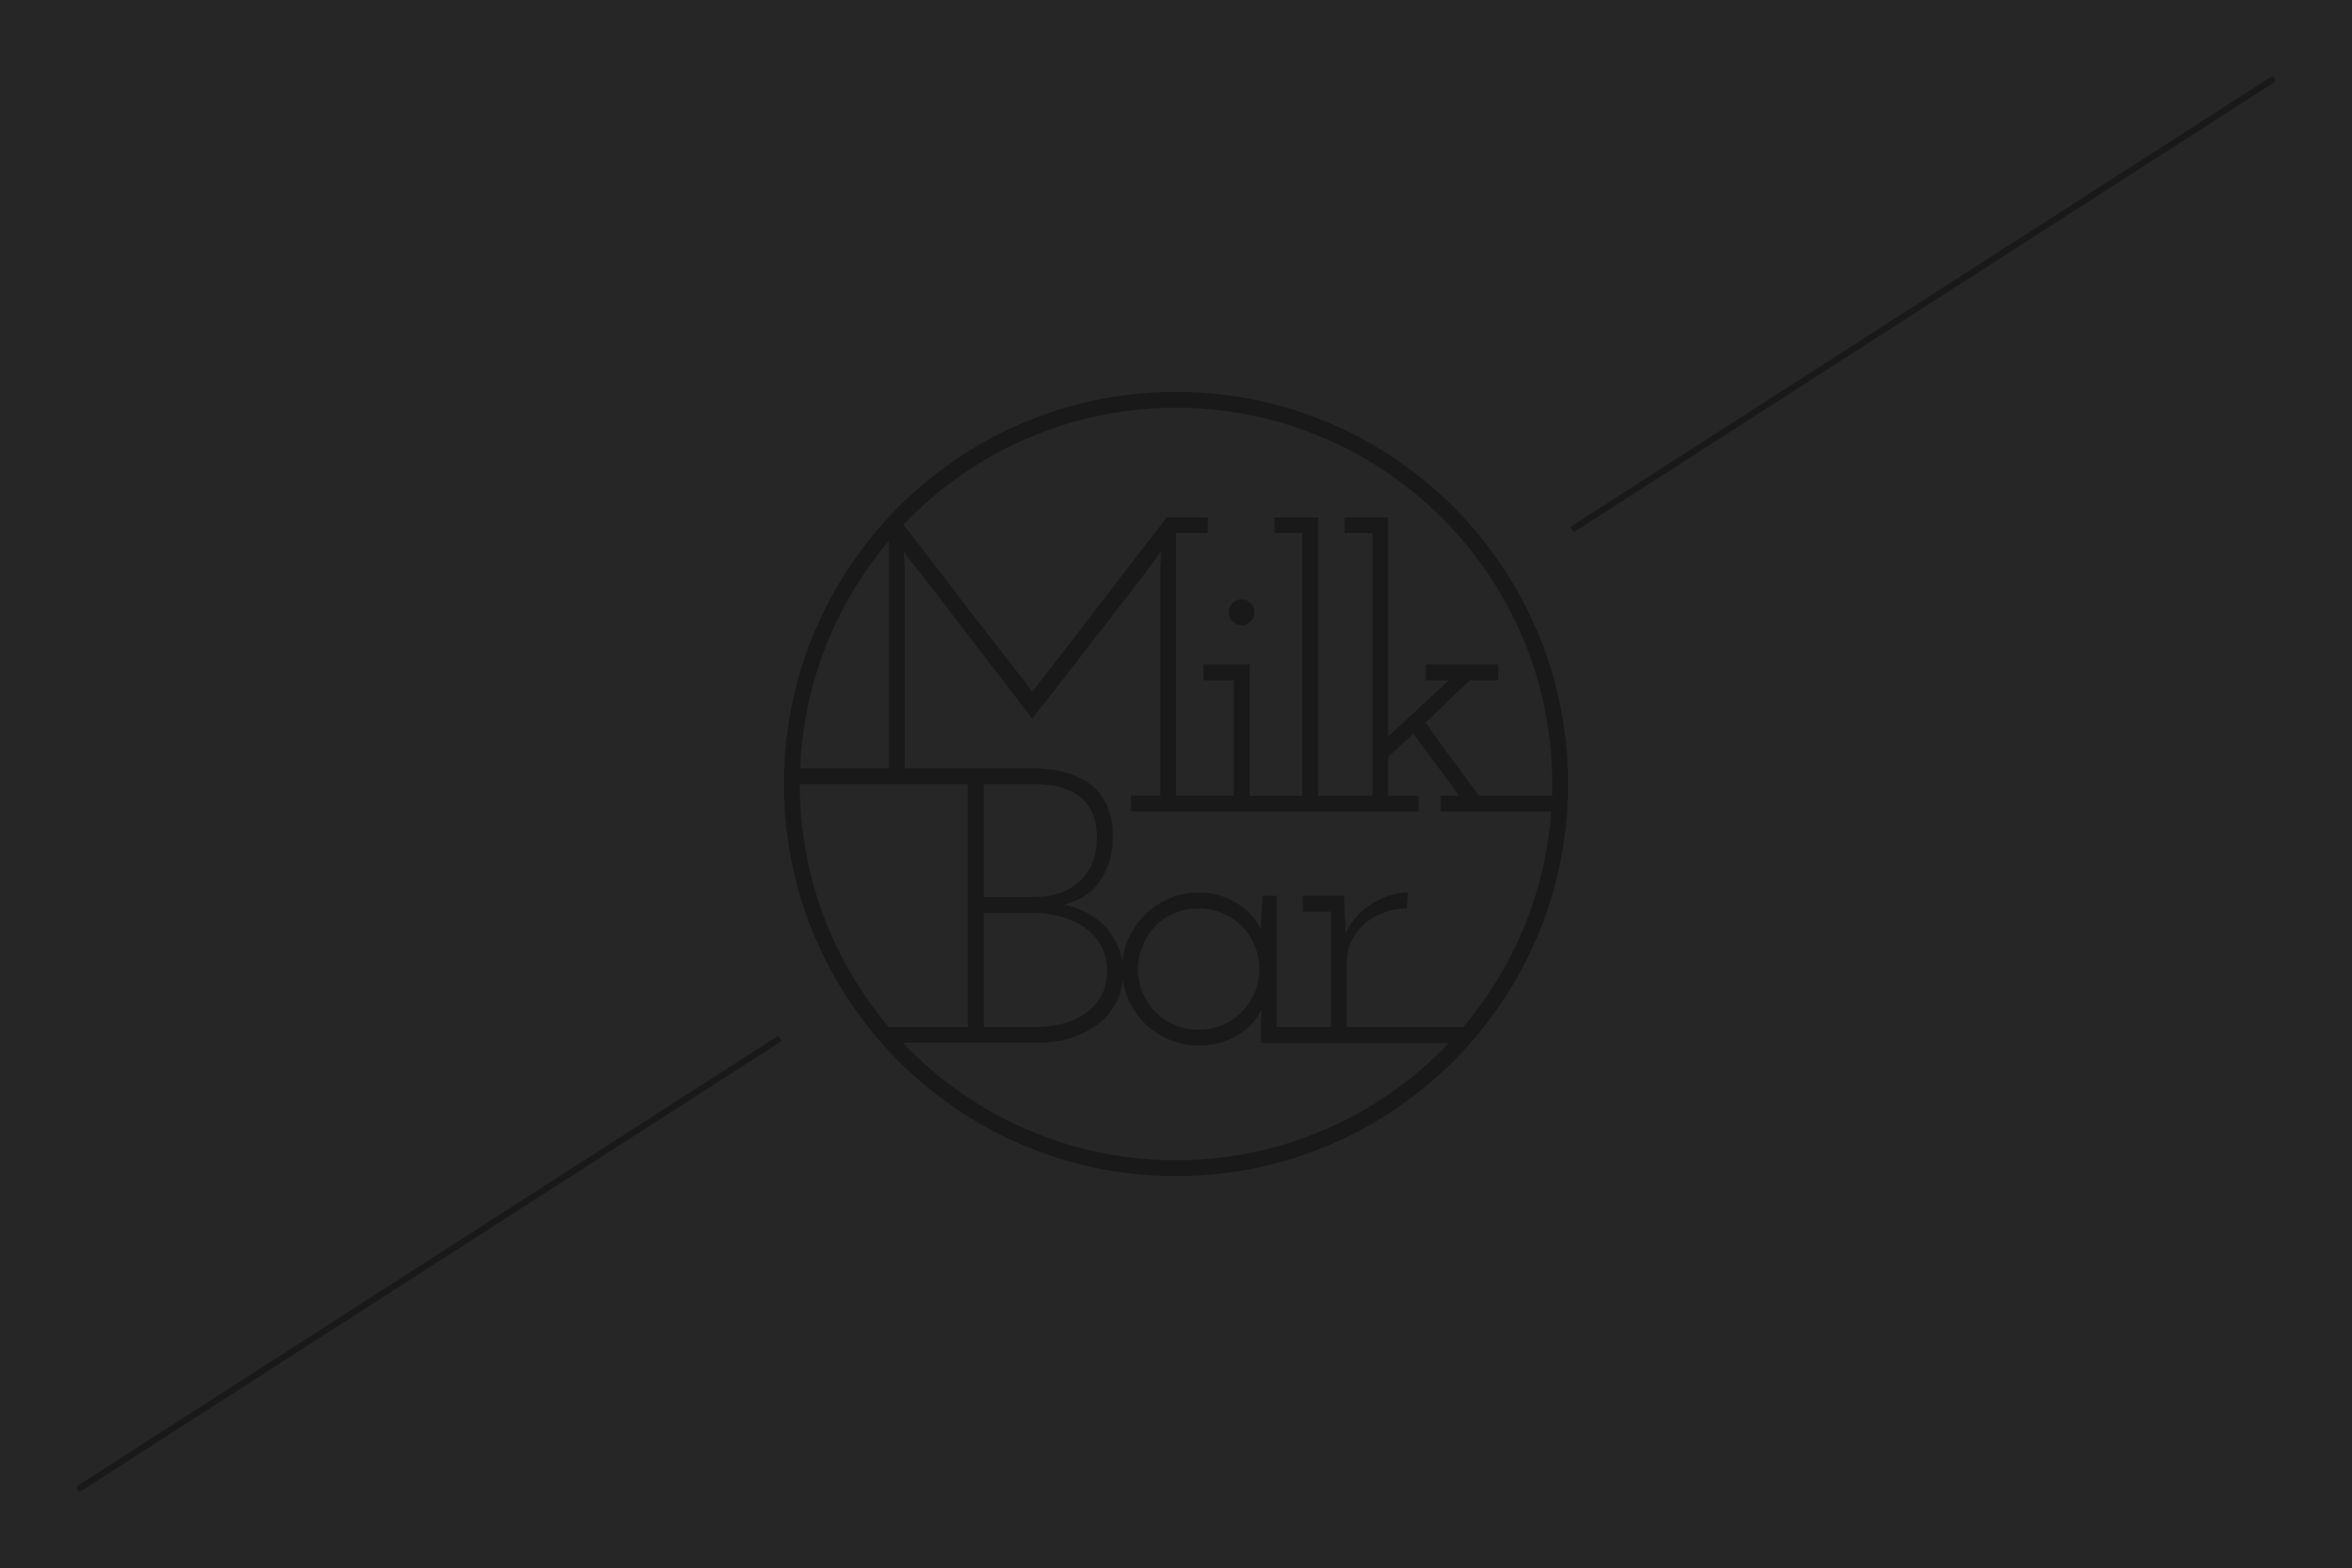 https://www.milkbar.jp/wp/wp-content/uploads/2020/08/menu-photo_no-photo.png